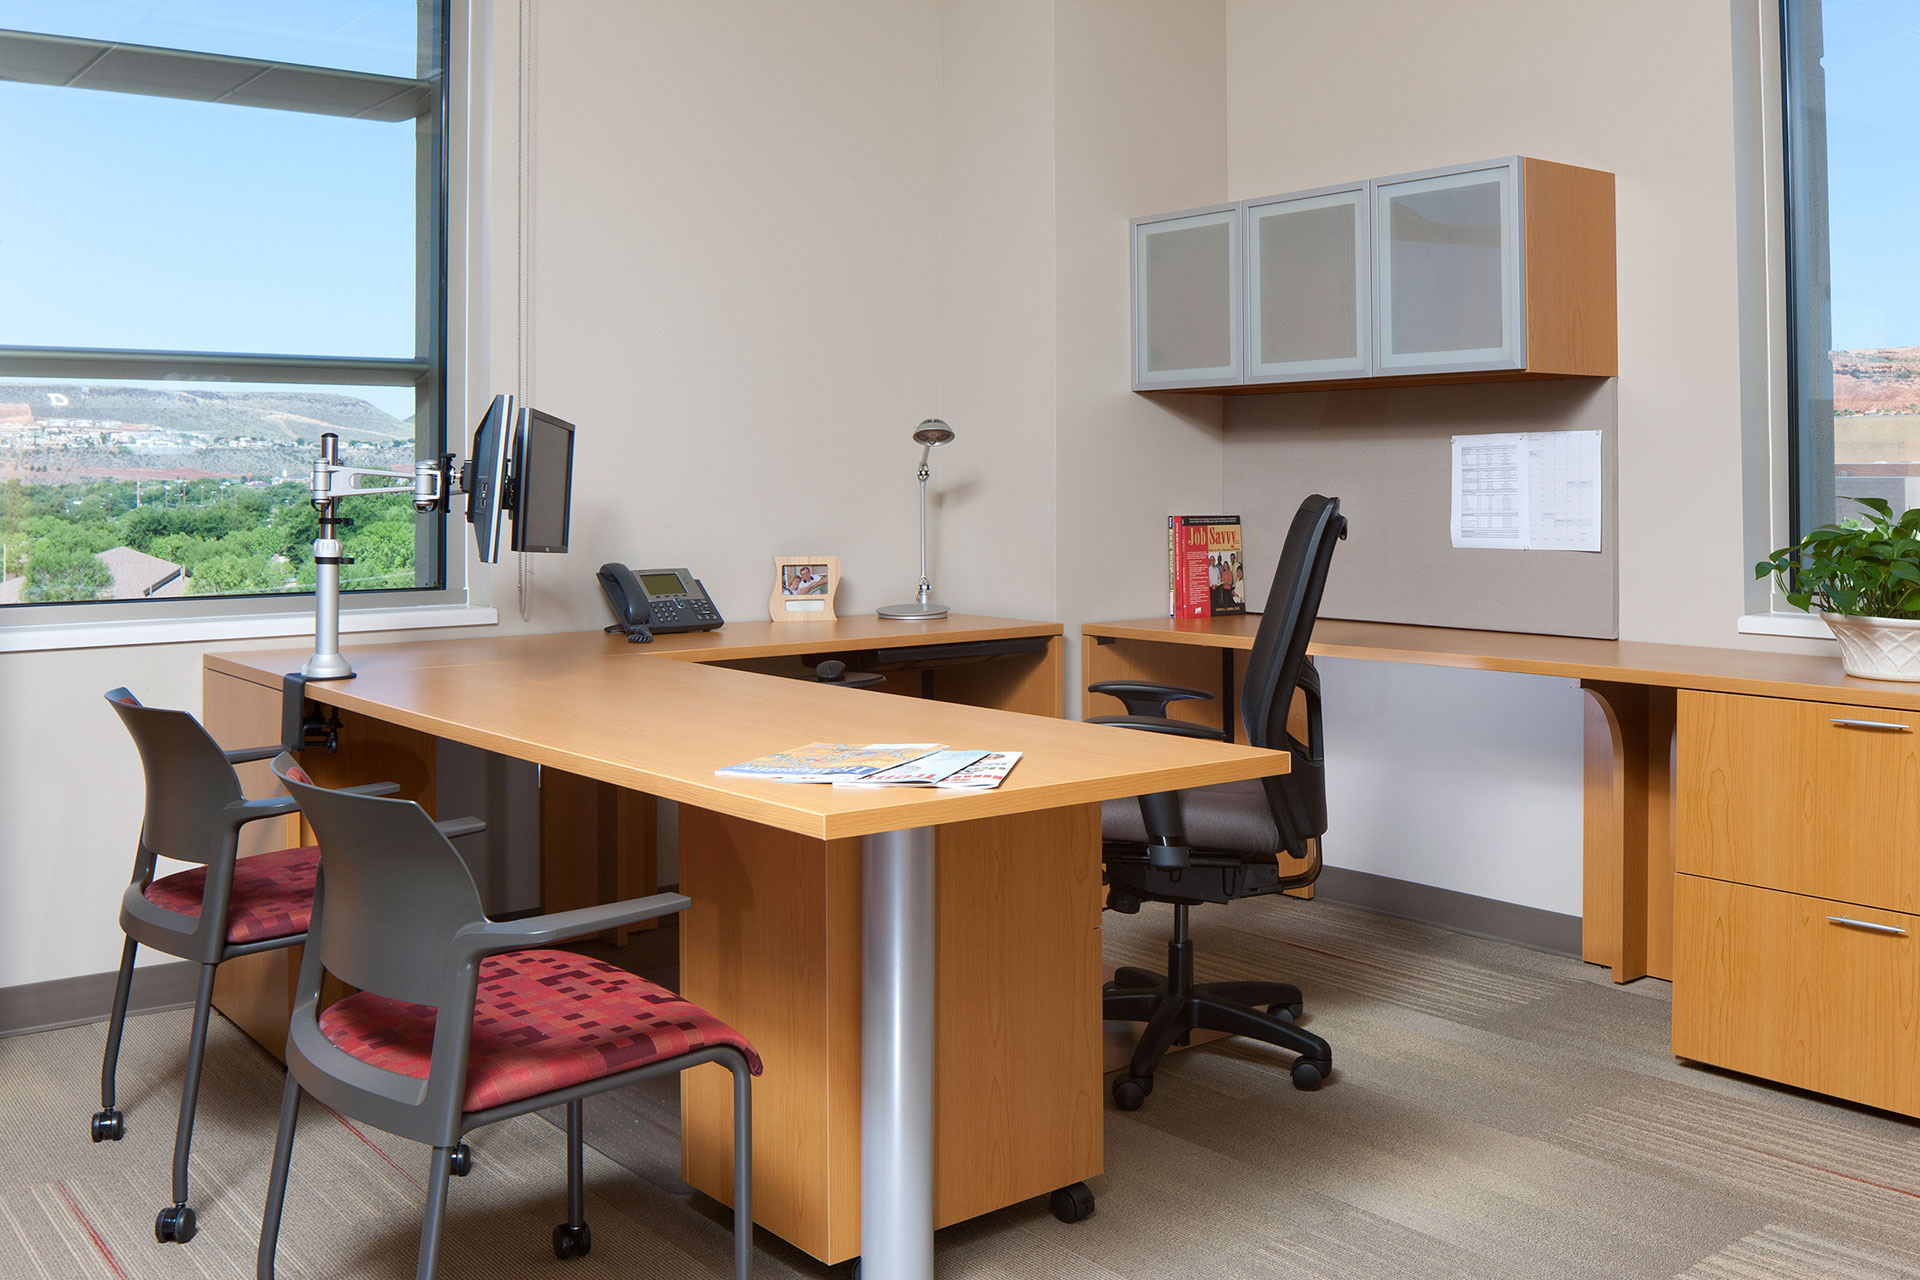 Library Storage - Office Storage at Dixie State University